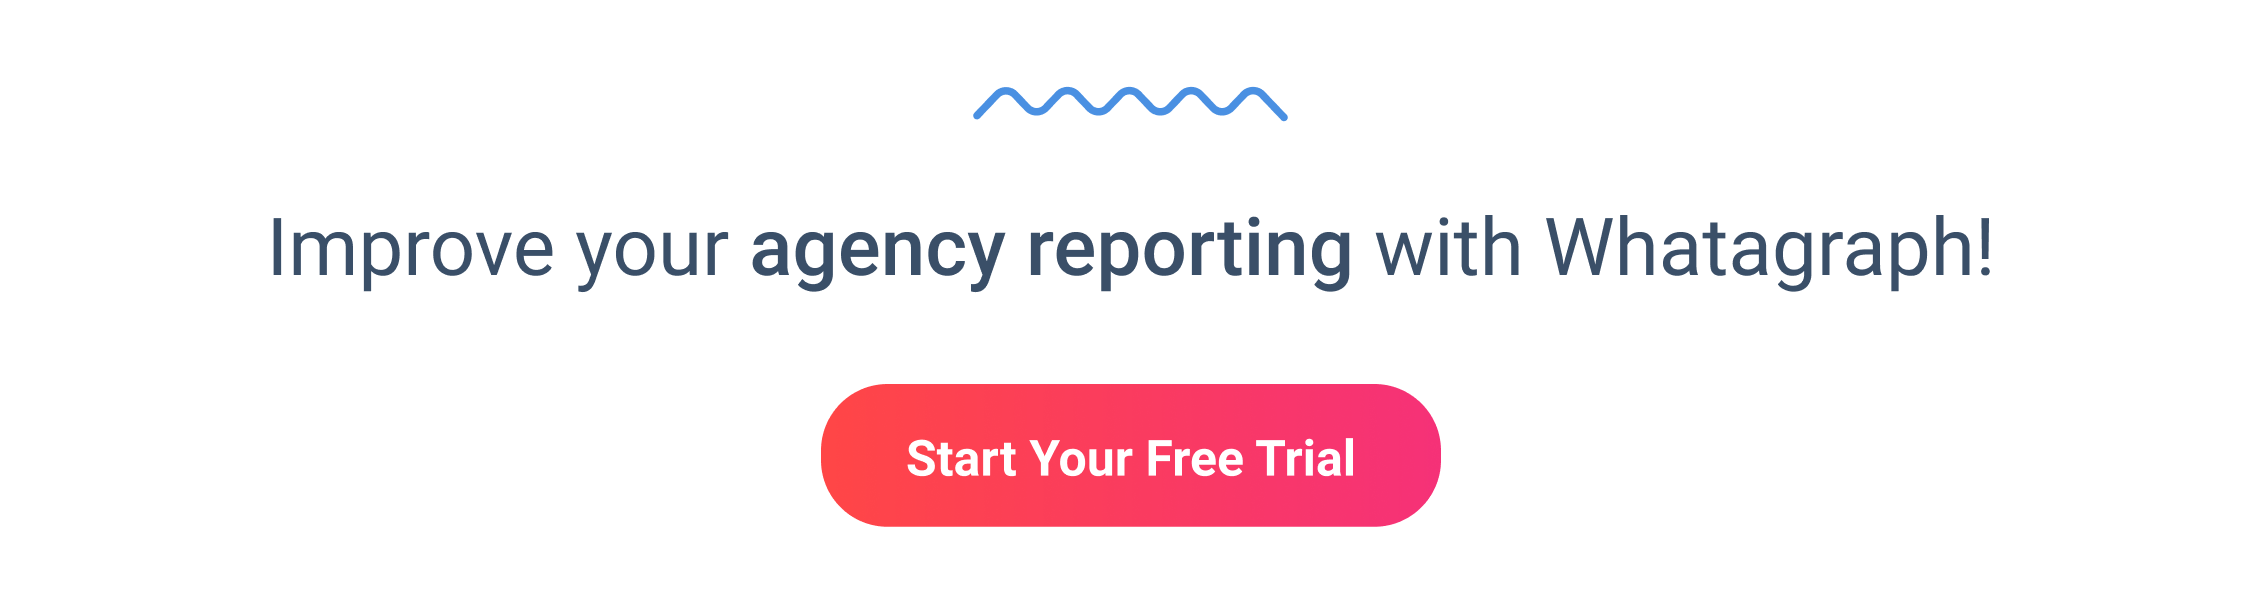 Free agency reporting software